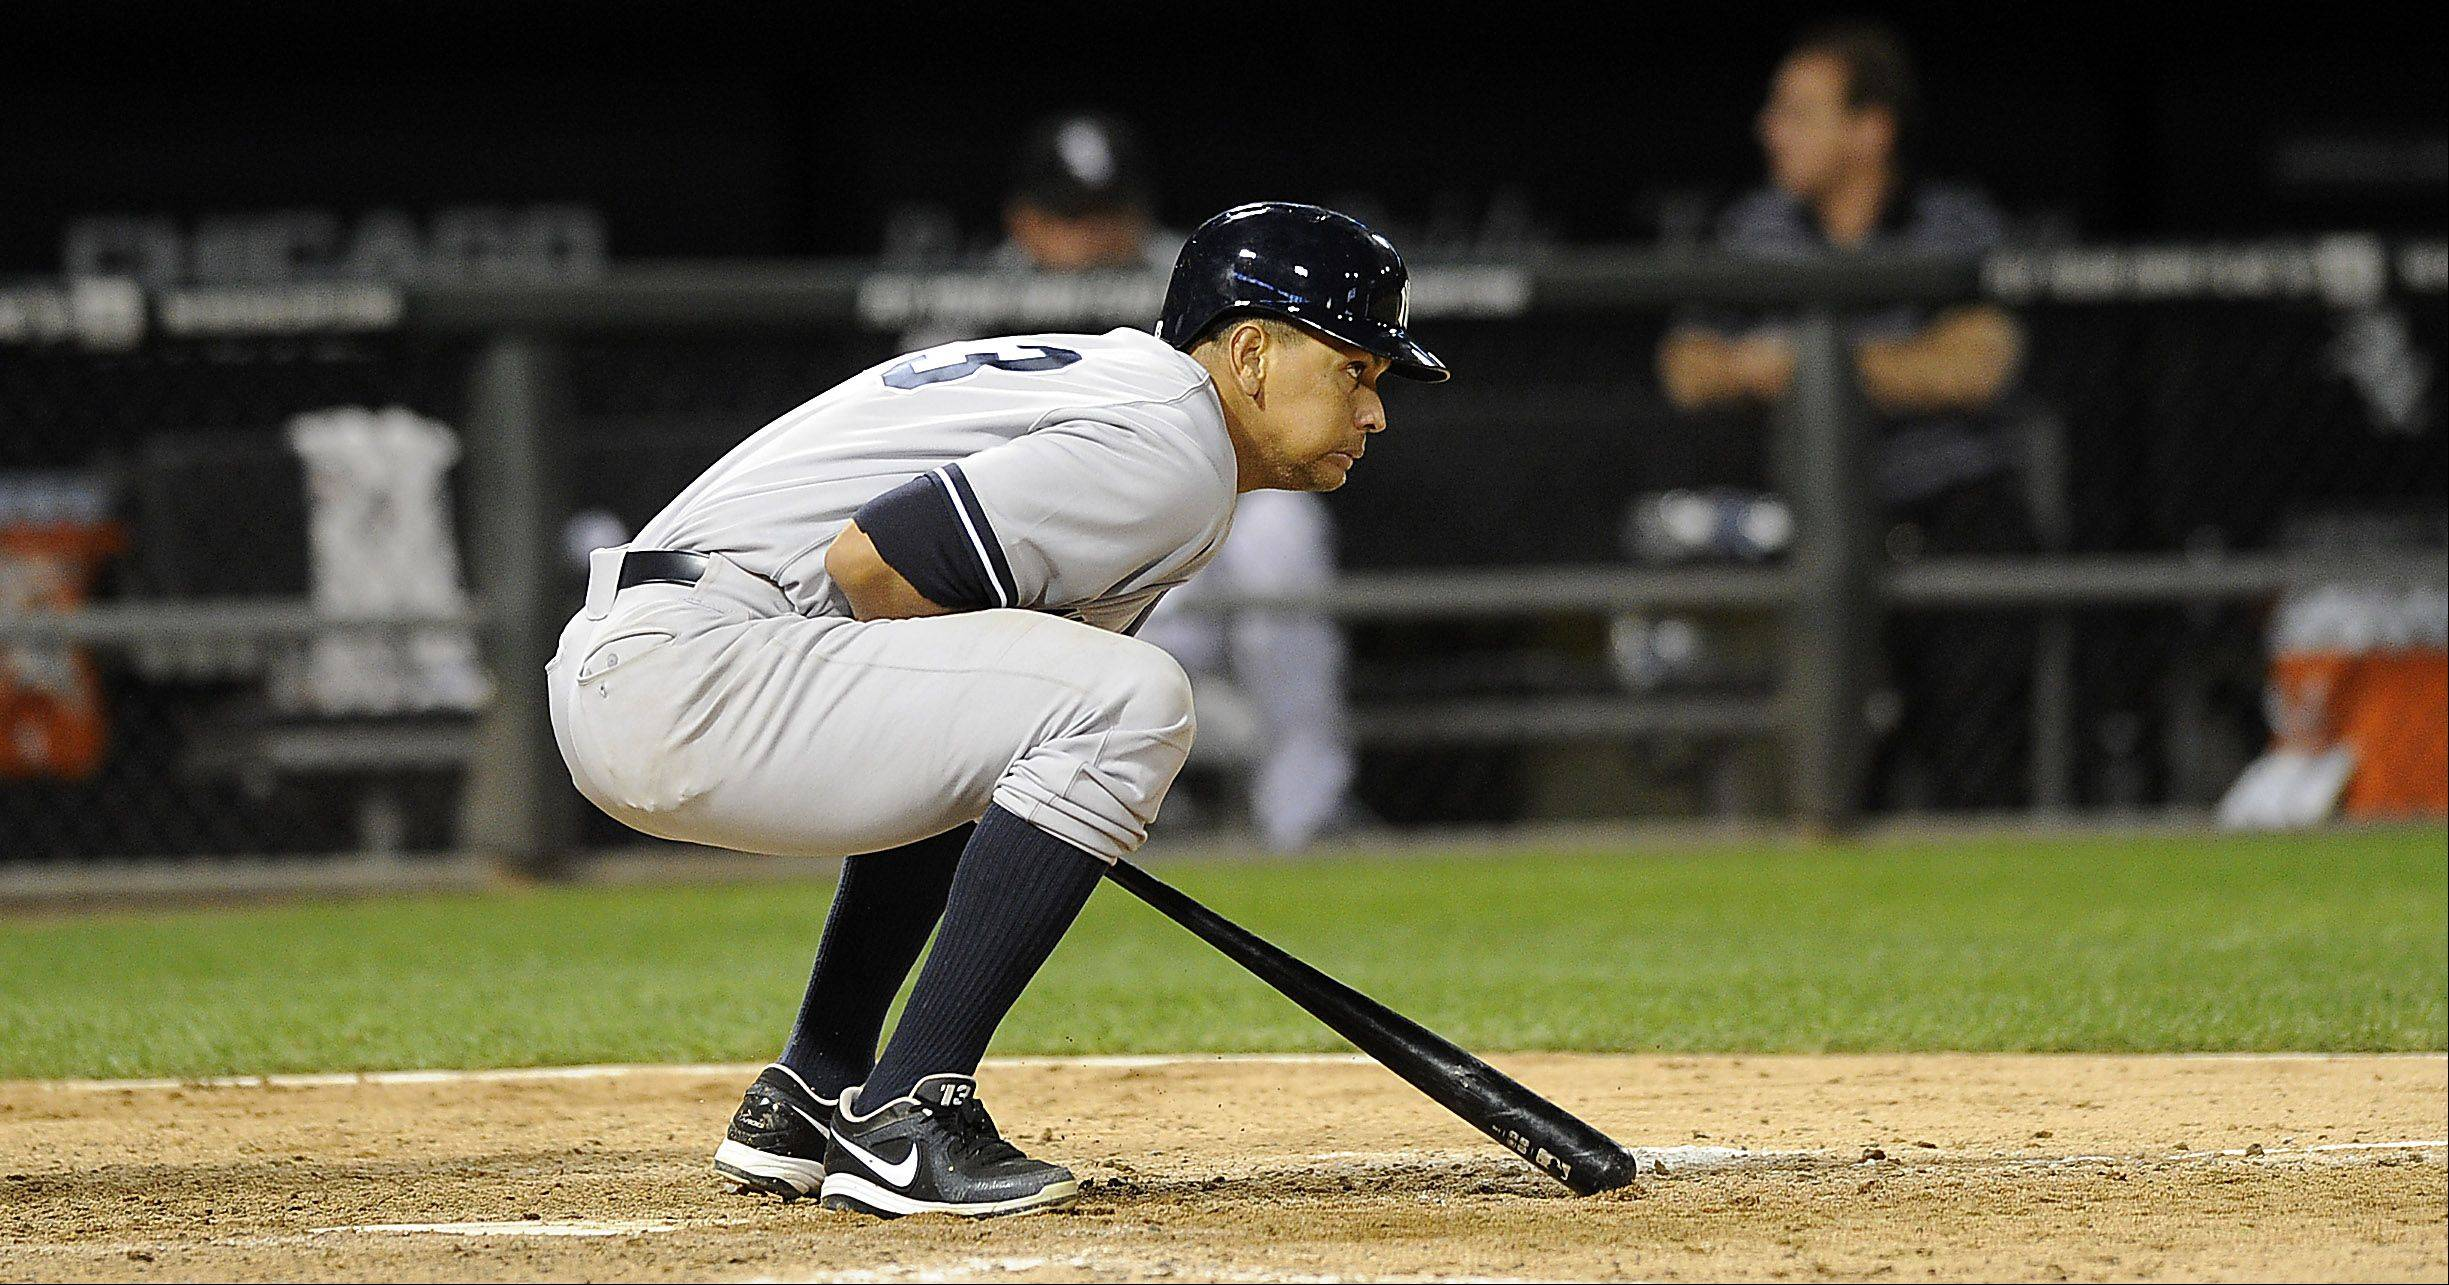 New York Yankees Alex Rodriguez reacts to a pitch in the 8th inning.